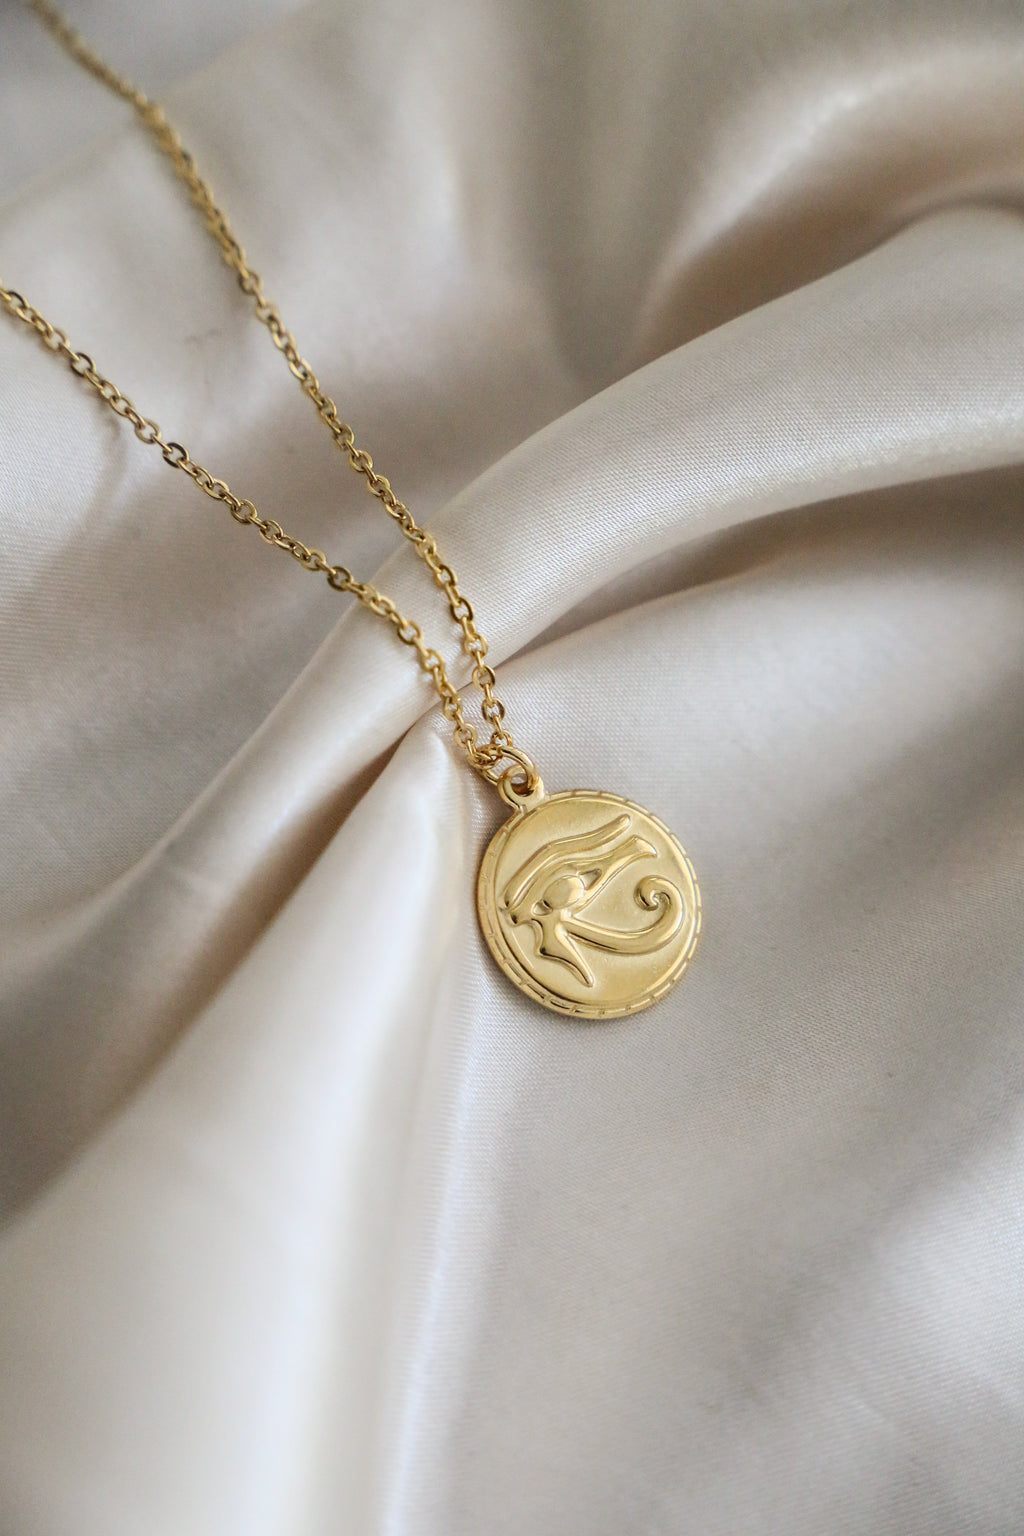 Eye of Horus Necklace - Boutique Minimaliste